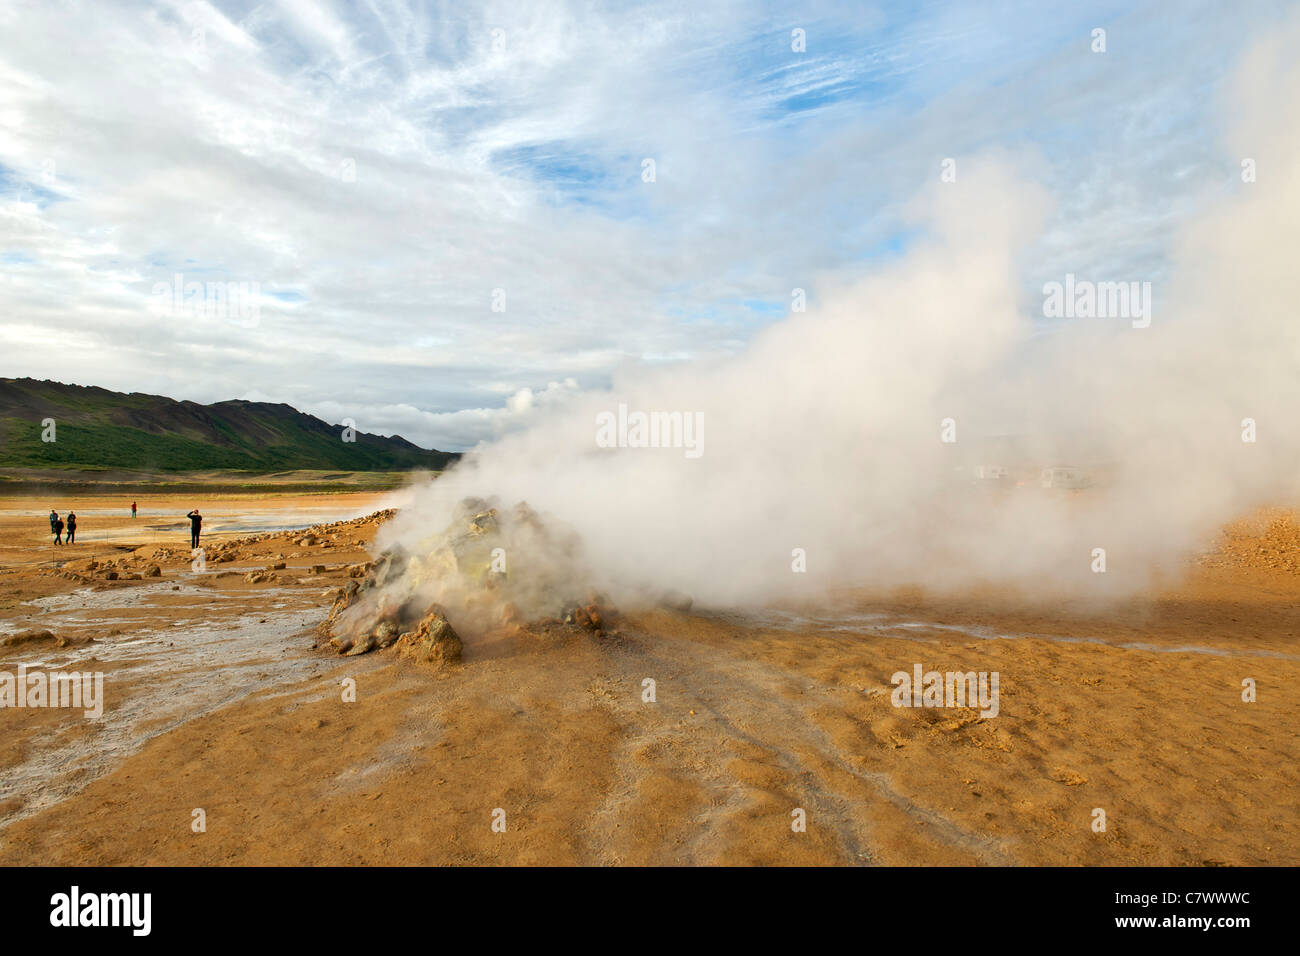 Steaming fumaroles (volcanic vents) at Hverir (aka Hverarond) east of Myvatn in northeast Iceland. - Stock Image